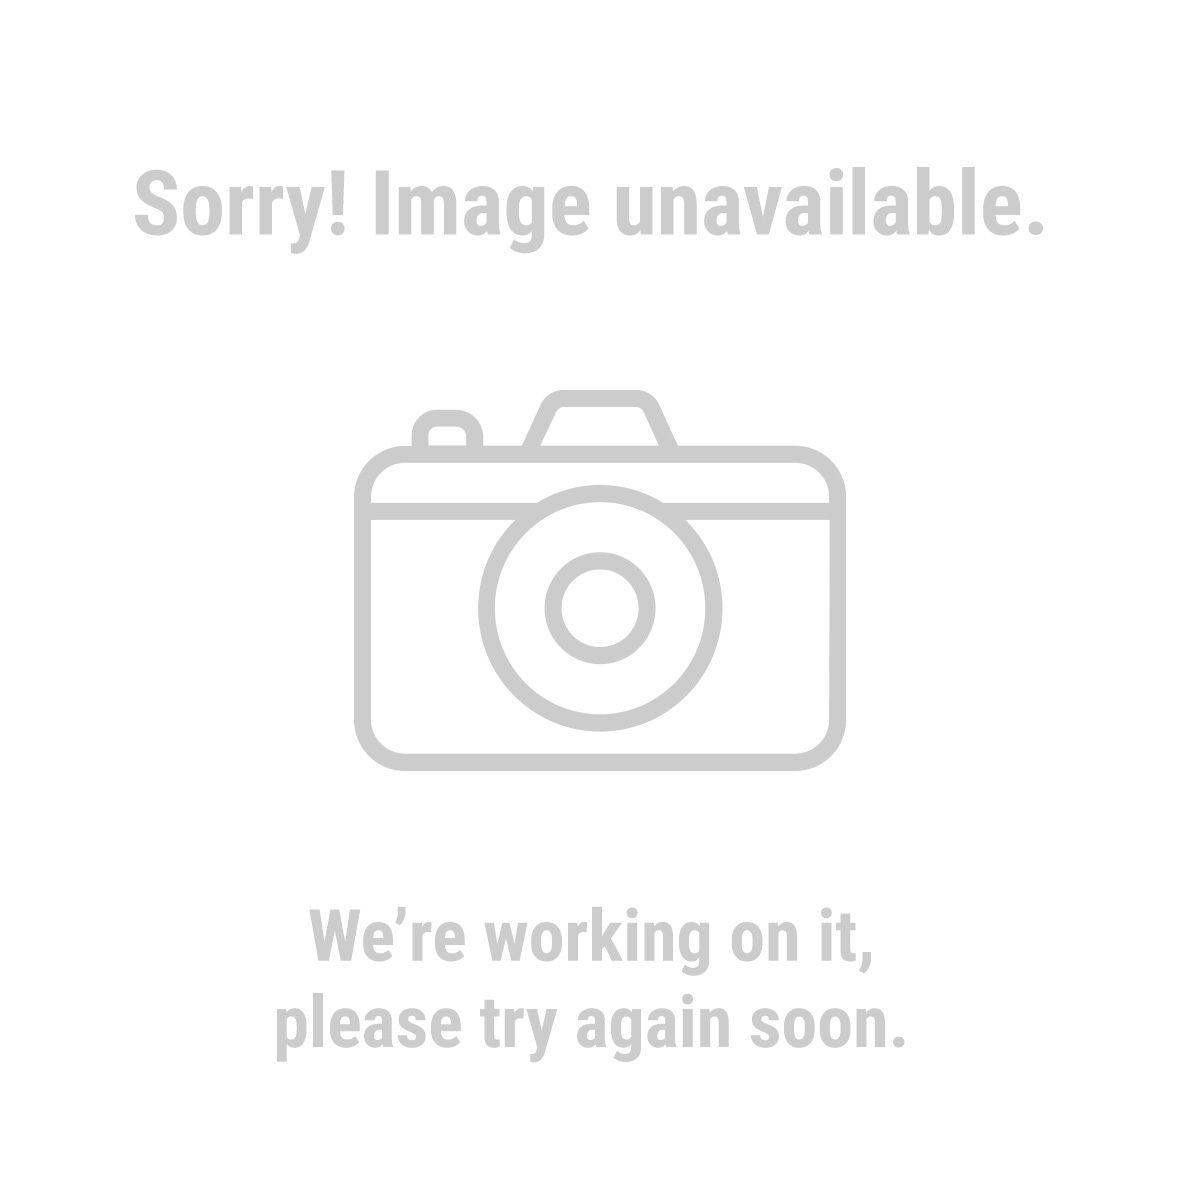 PDI Inc. 2779 14-1/2 Oz. Plasti Dip® - Black